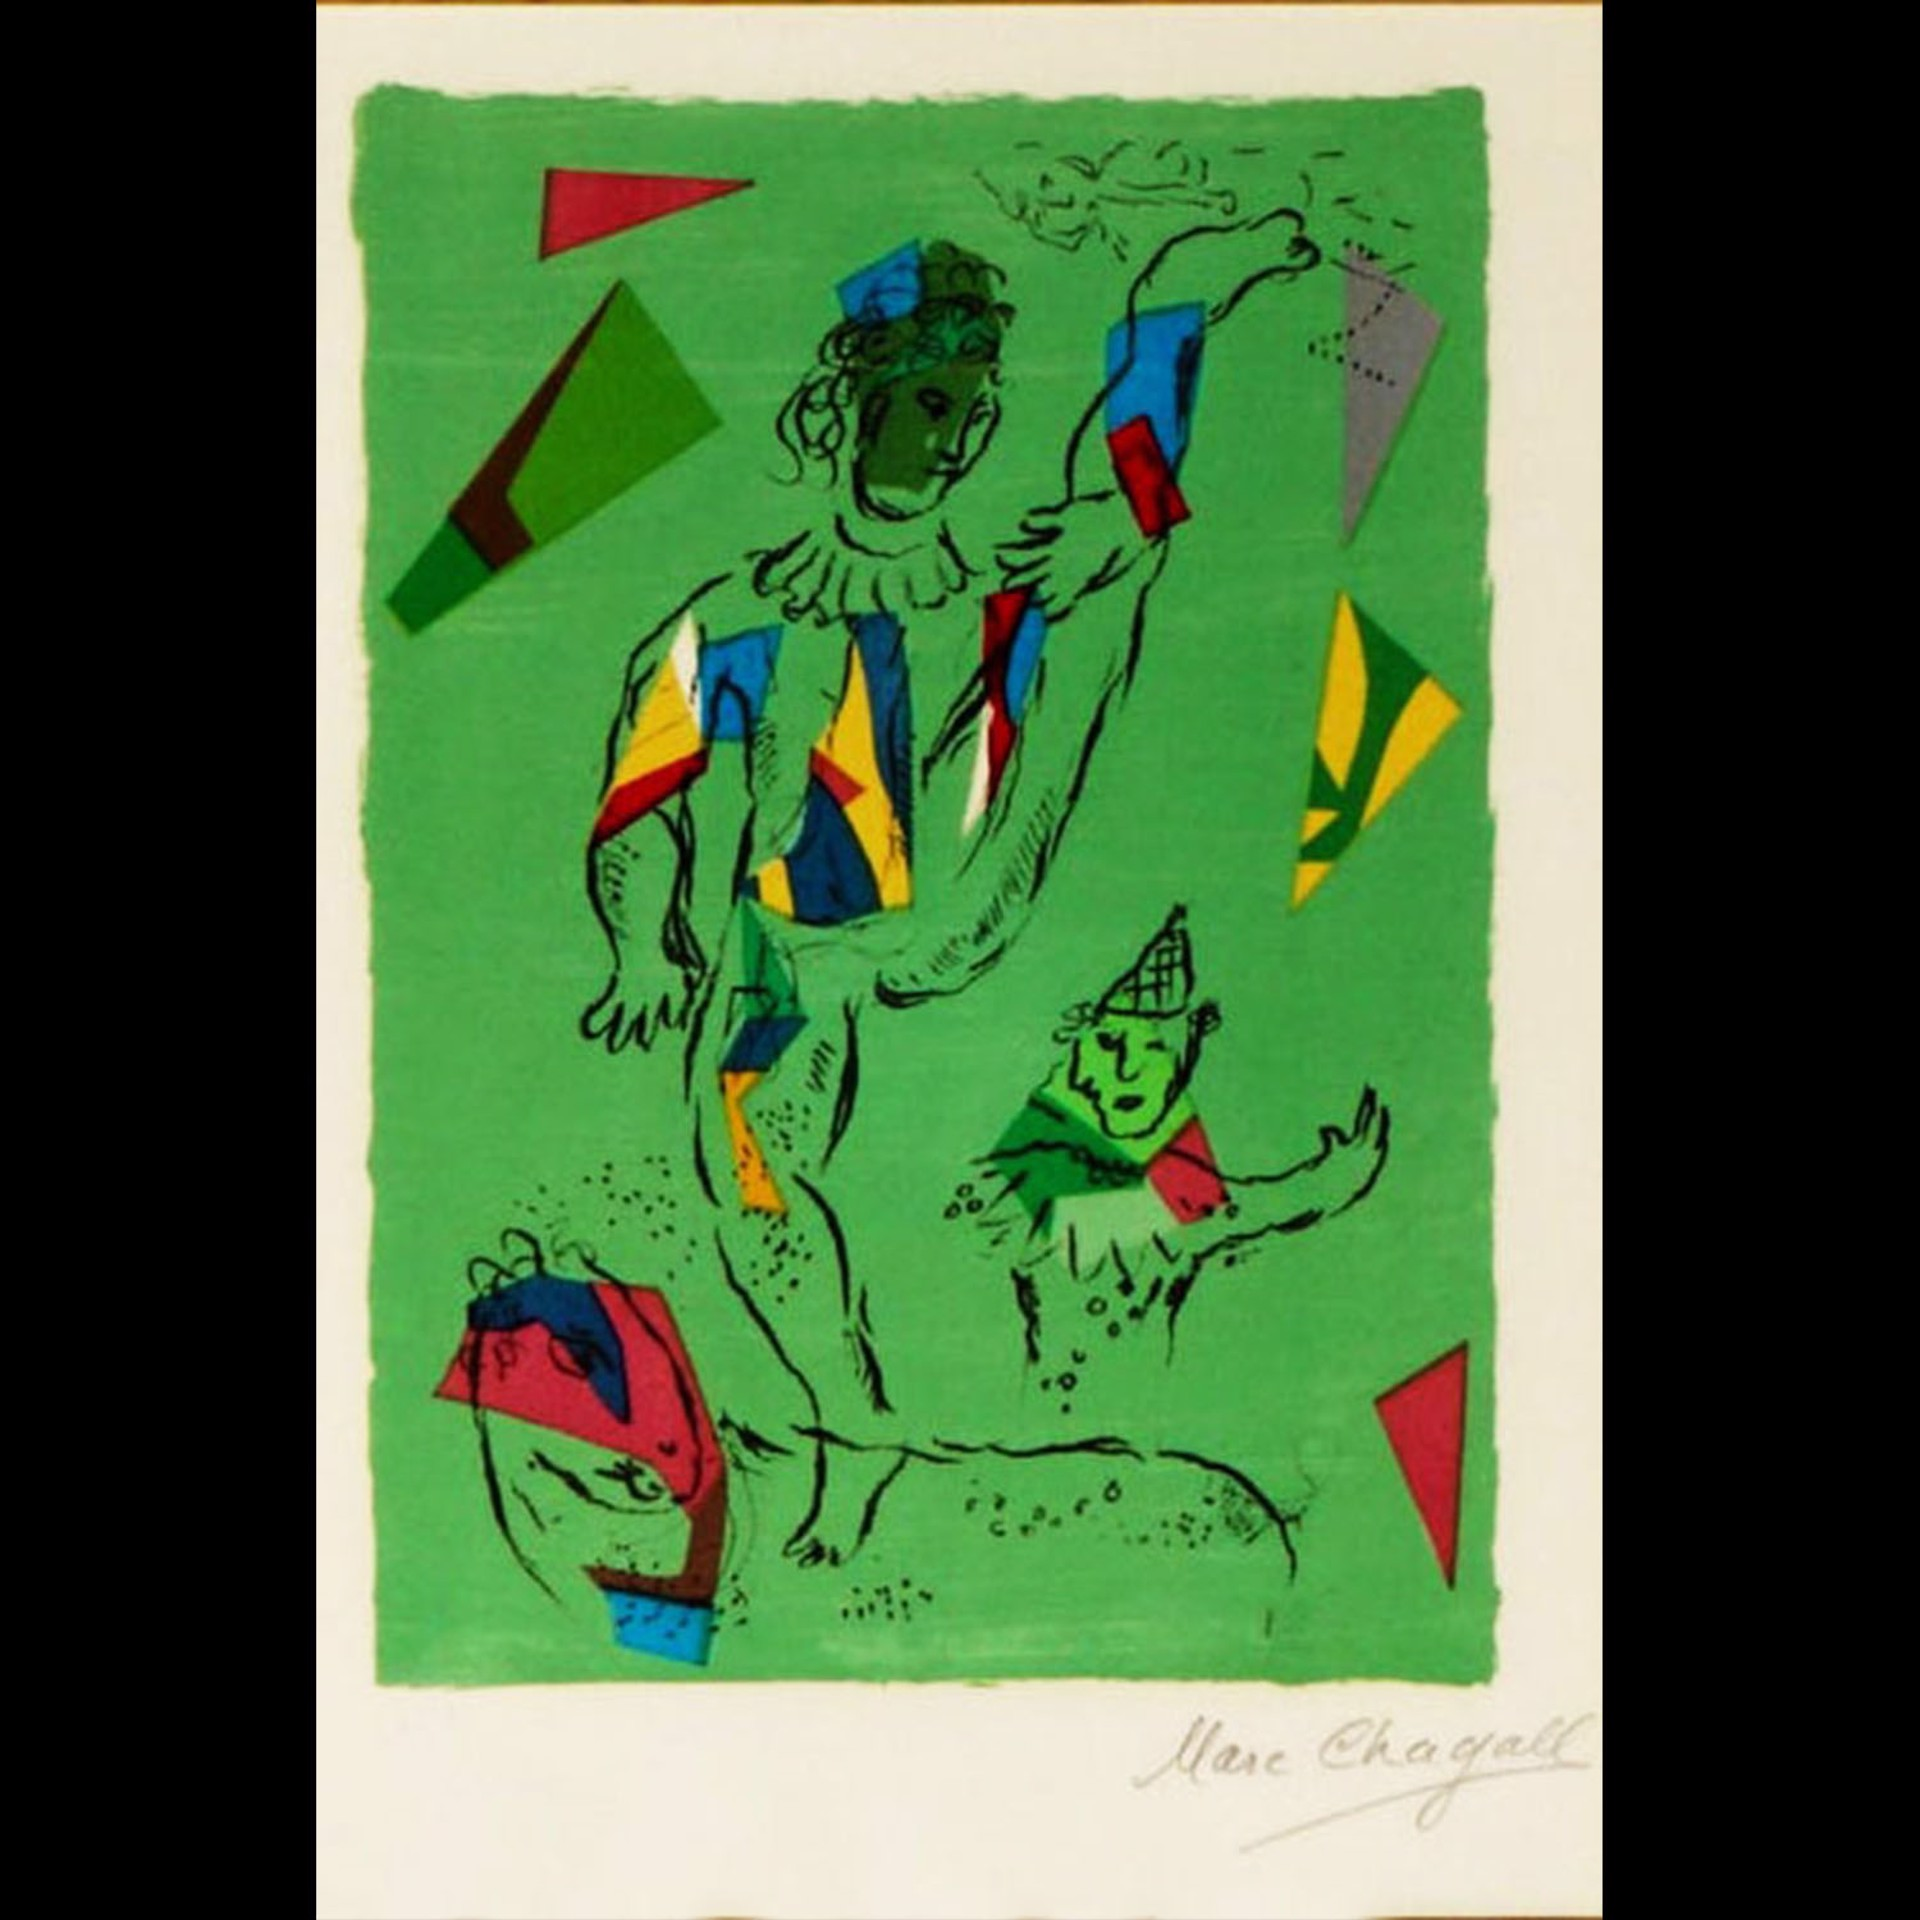 The Green Acrobat by Marc Chagall